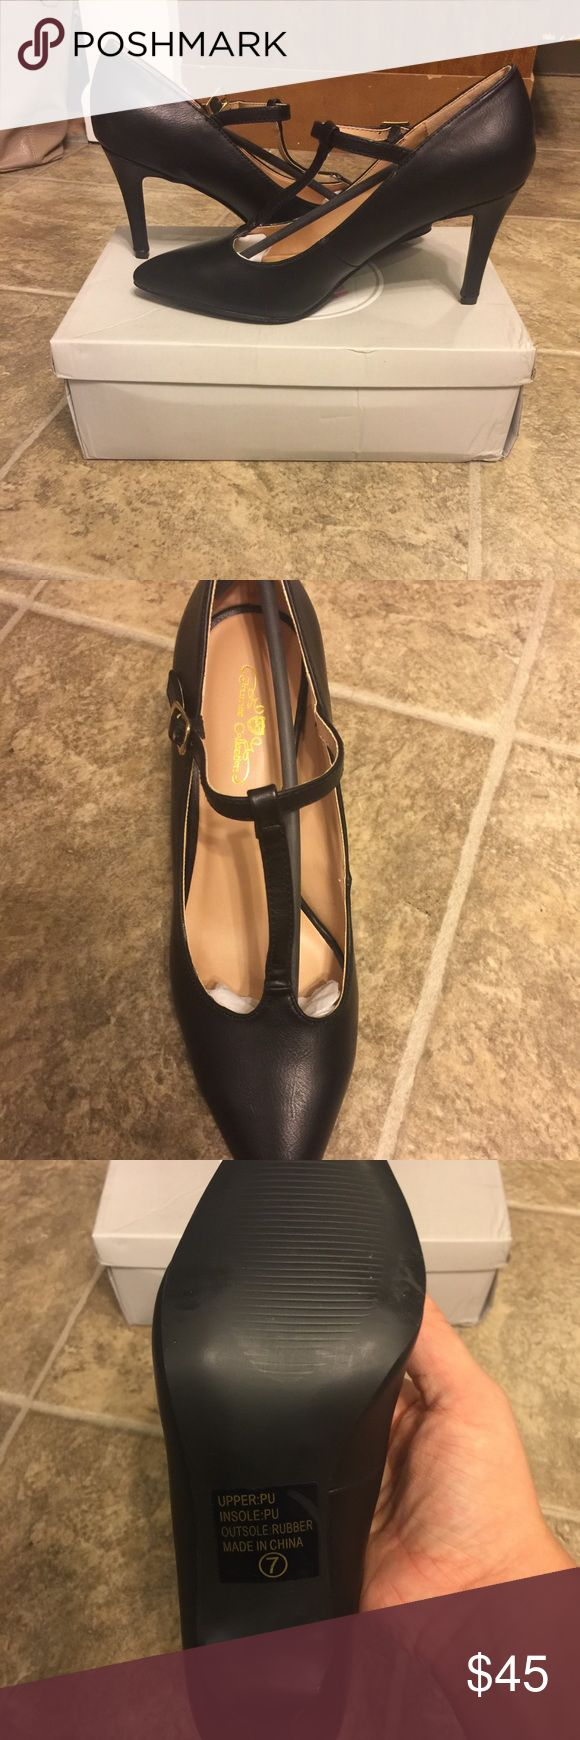 T-Strap pump size 7 black 3.25 inch heel Brand new, never worn, original packaging included Journee Collection Shoes Heels